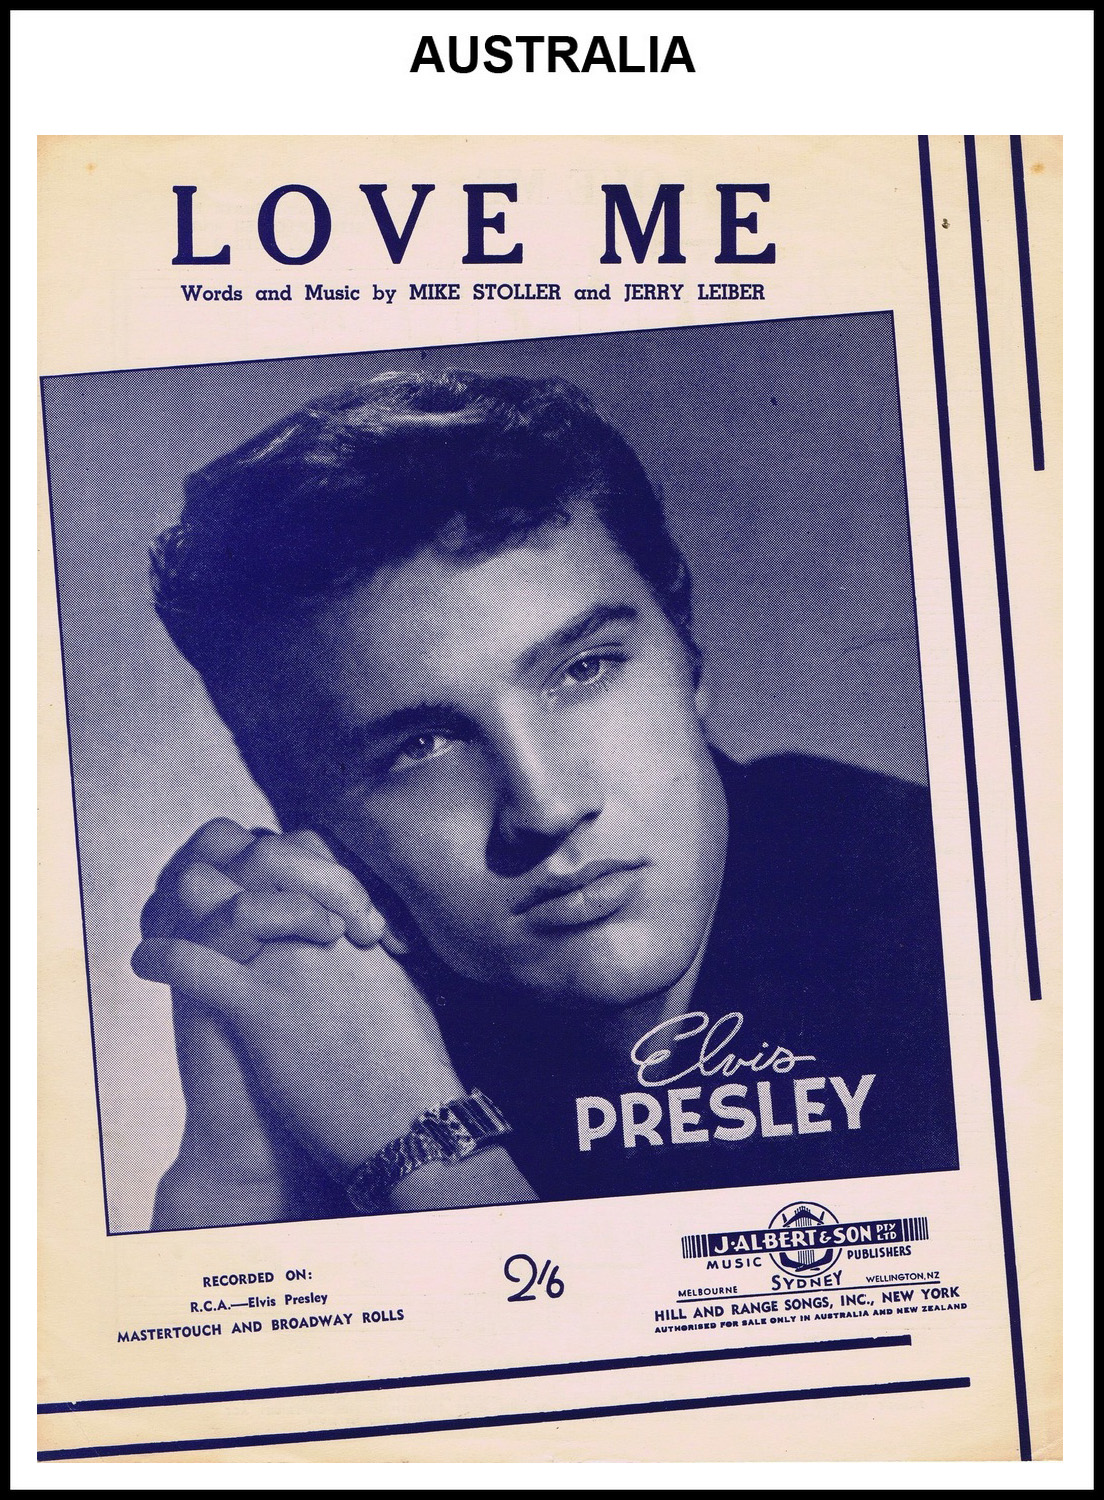 1956 - Love Me (Australia) (CHRIS GILES COLLECTION)